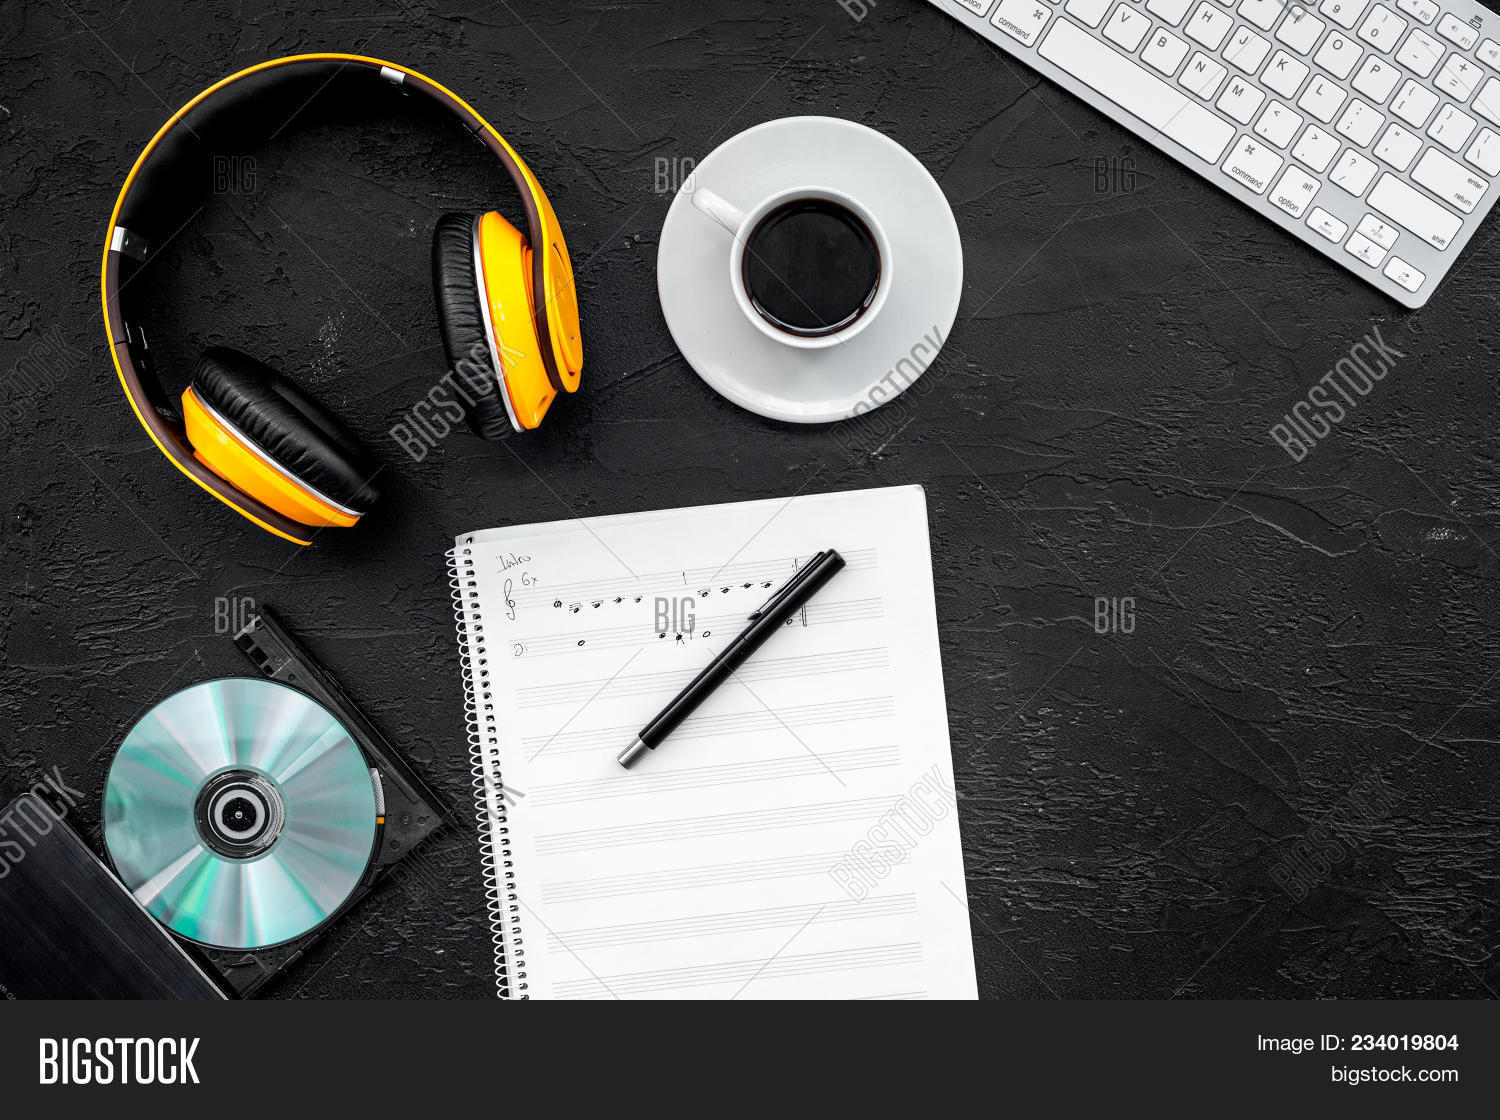 Composer Song Writer Image & Photo (Free Trial) | Bigstock